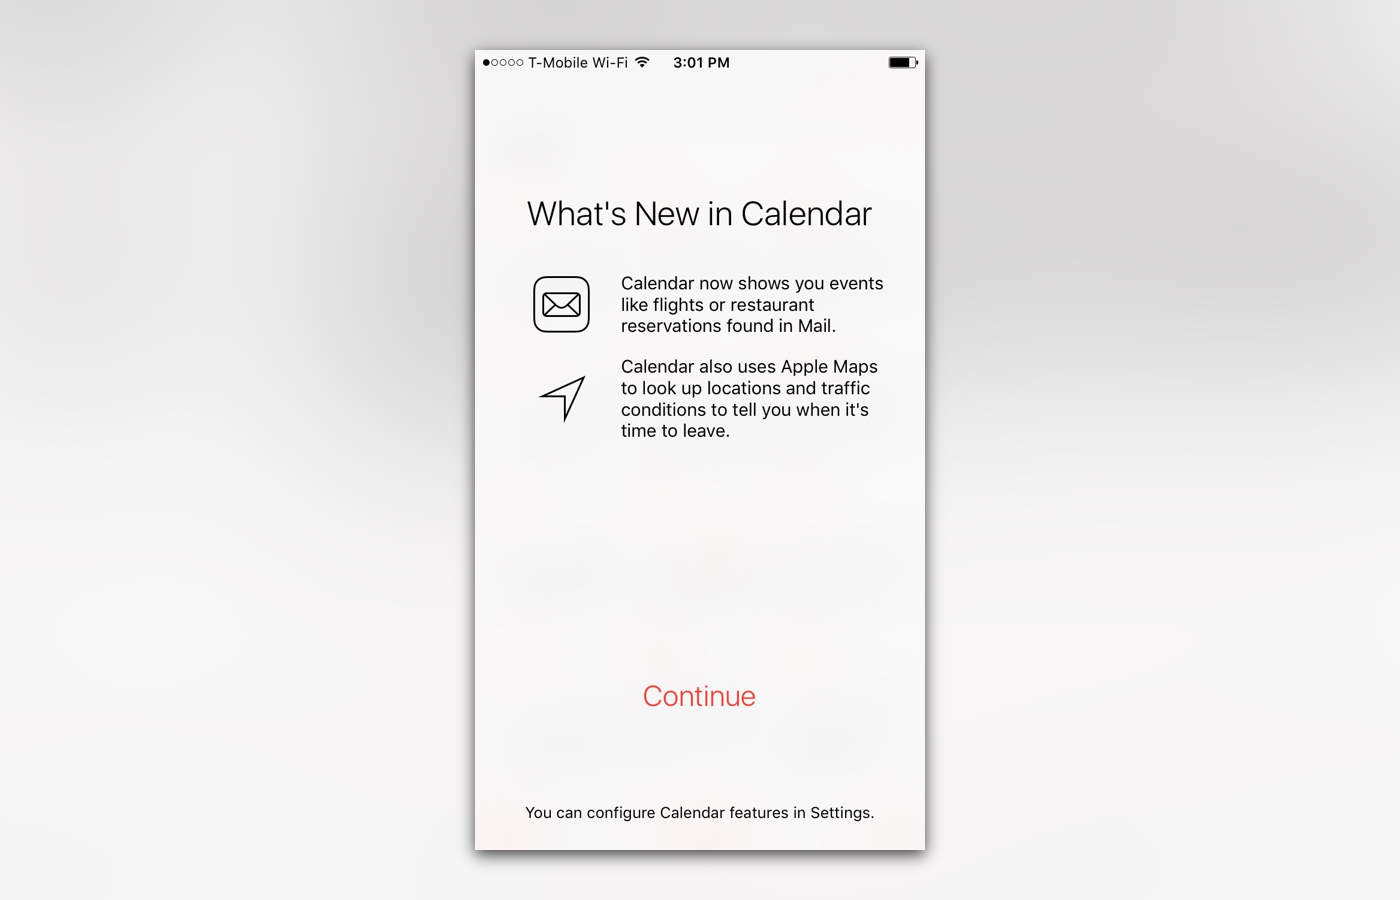 Whats New On Calendar >> Wallpapers And Wi Fi Calls Galore New Stuff In Ios 9 Beta 5